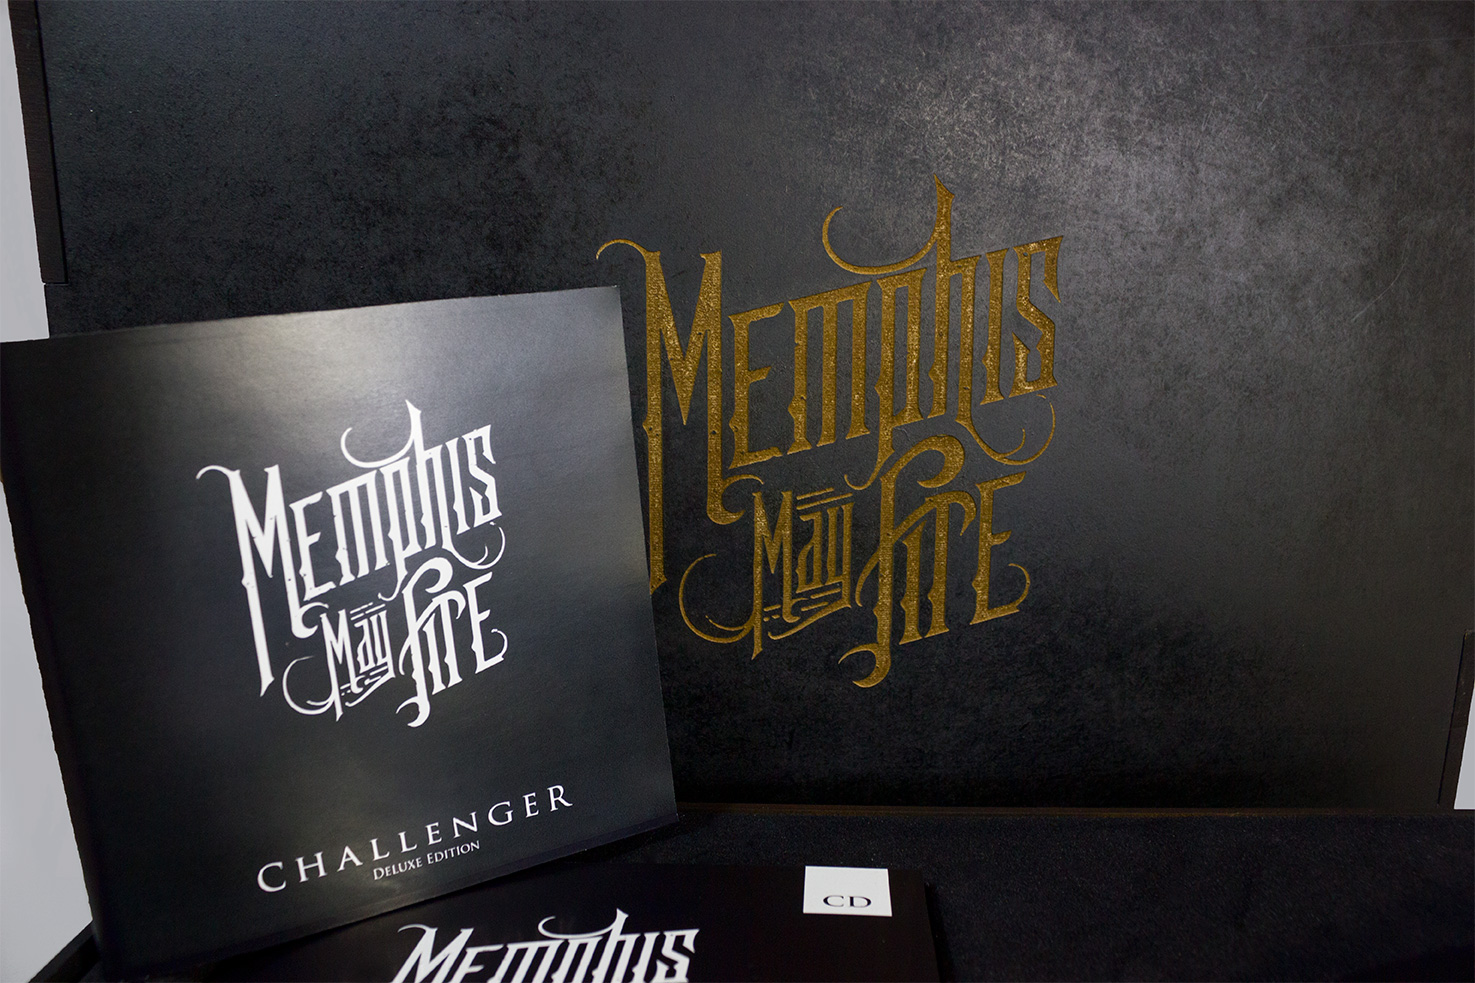 raniev-rod-alvarez-diseño-gráfico-queretaro-memphis-may-fire-9-packaging